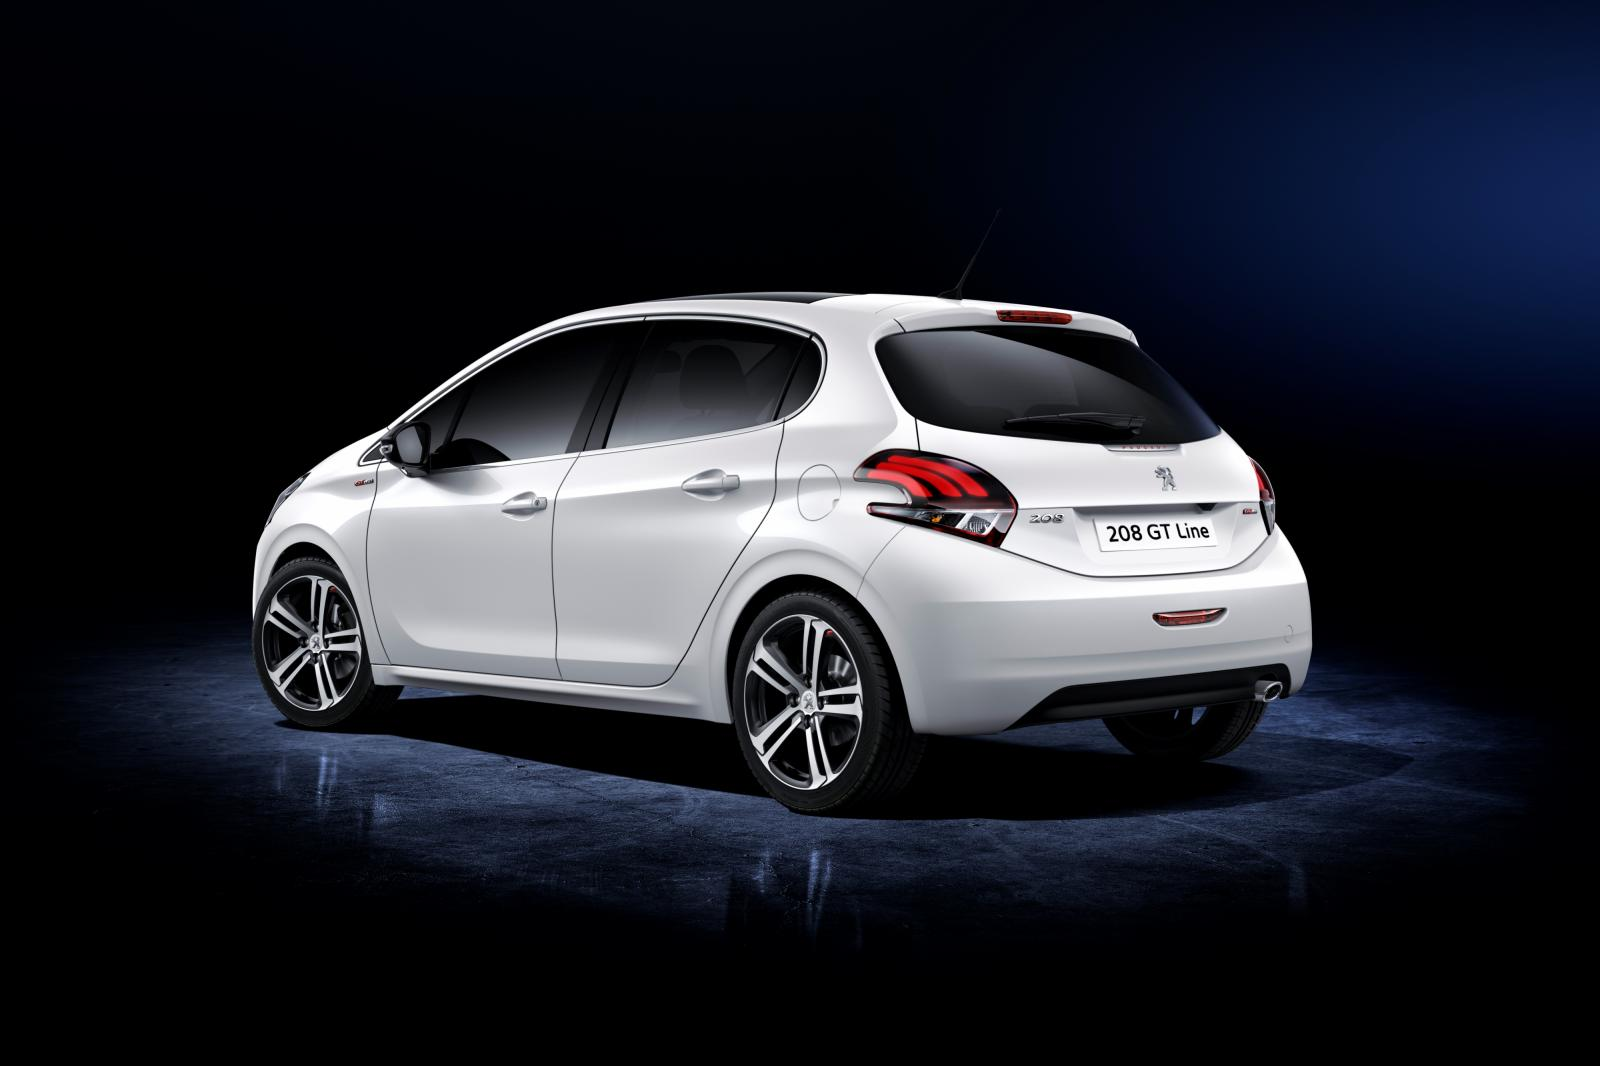 2015 Peugeot 208 Facelift Revealed, Complete with 1.2 Turbo and Orange Paint - autoevolution